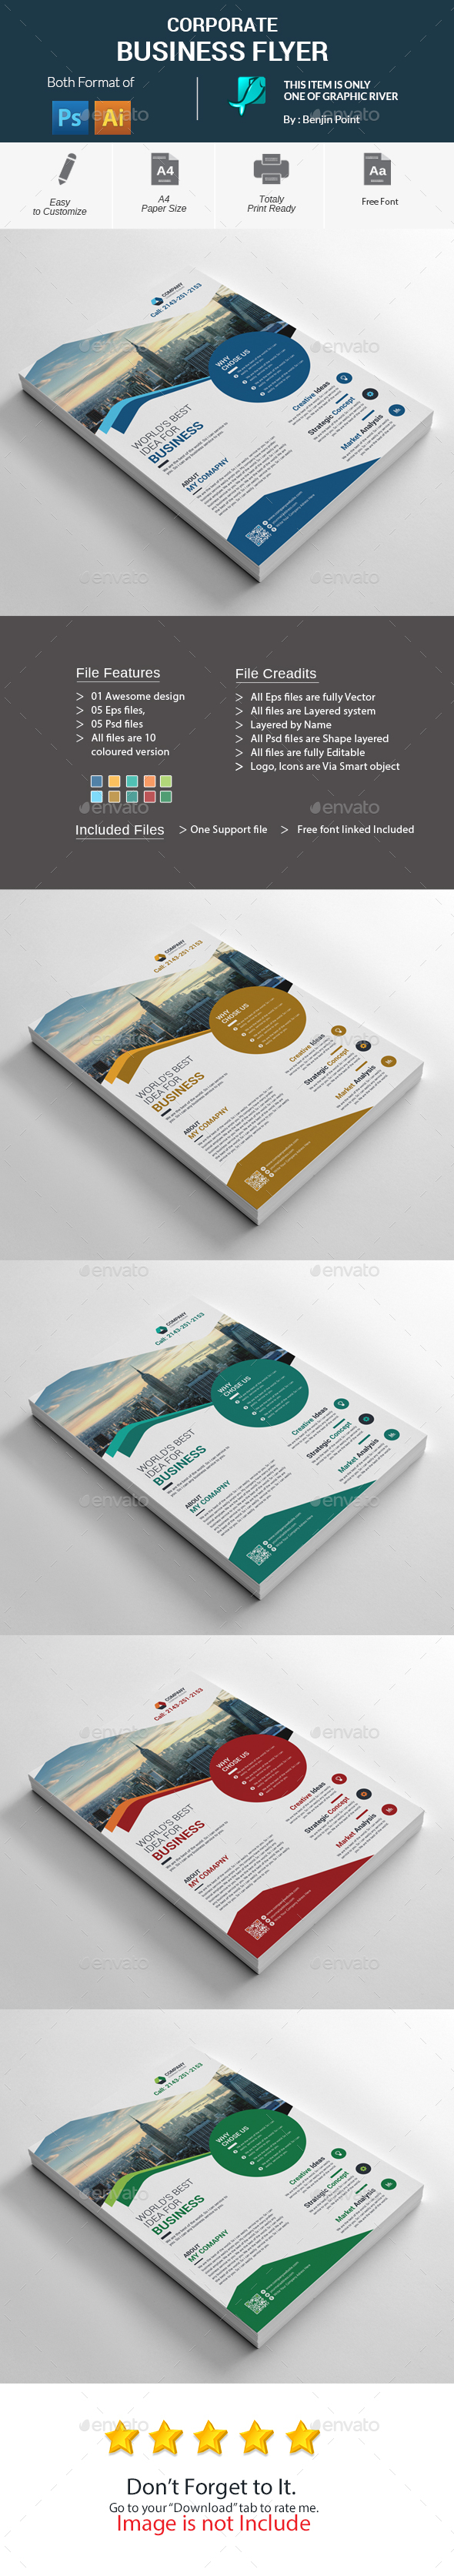 GraphicRiver Corporate Business Flyer 20674206